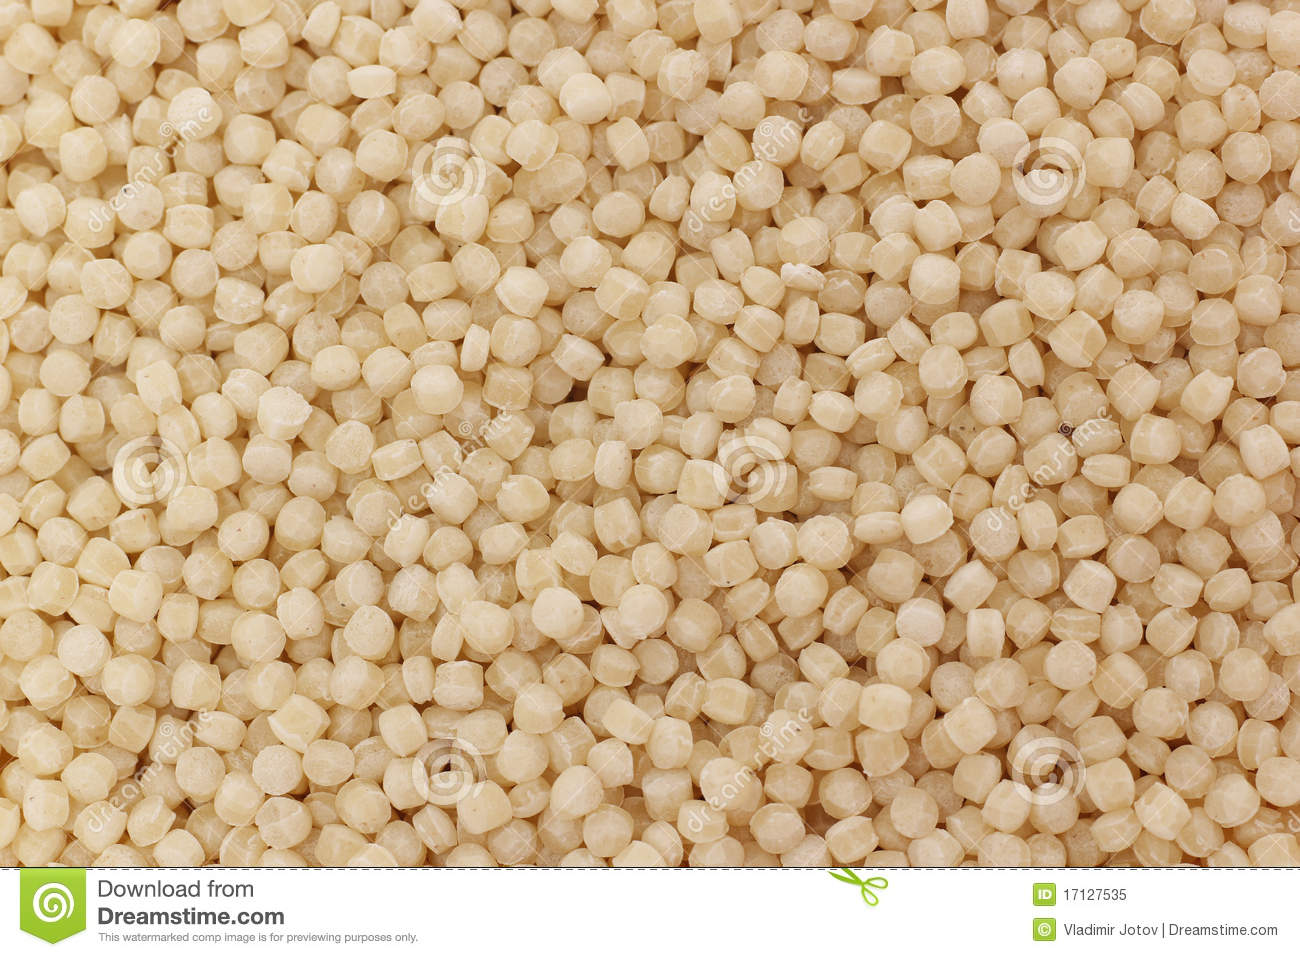 Raw Couscous Royalty Free Stock Photo - Image: 17127535